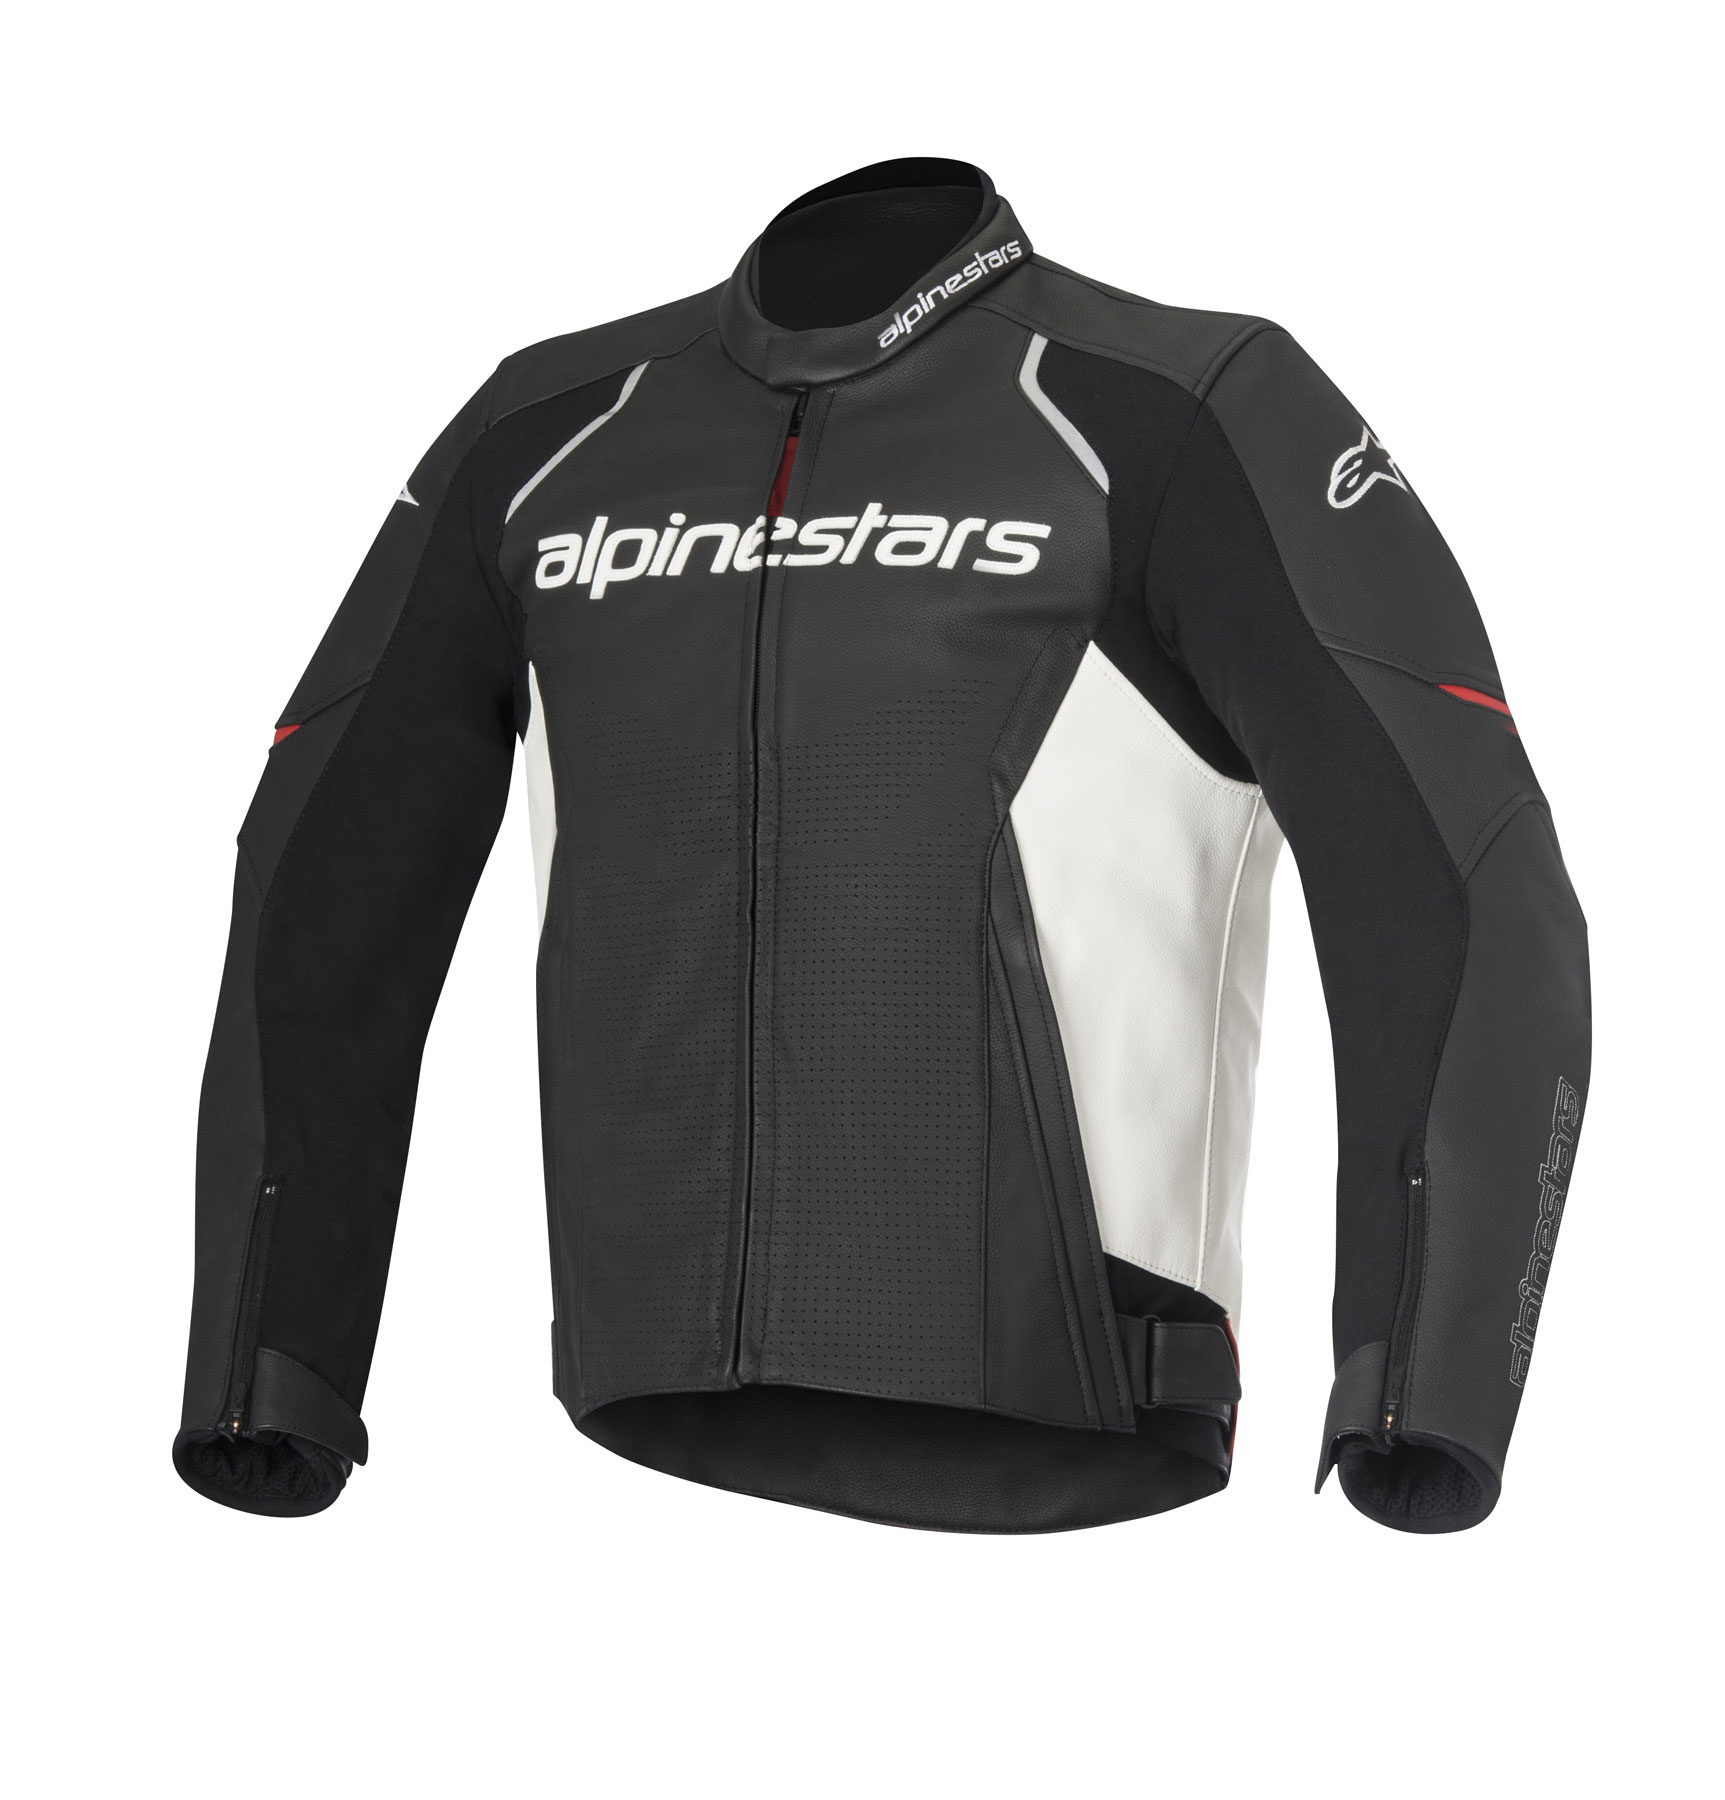 Alpinestars DEVON AIRFLOW Leather Jacket (Black/White)